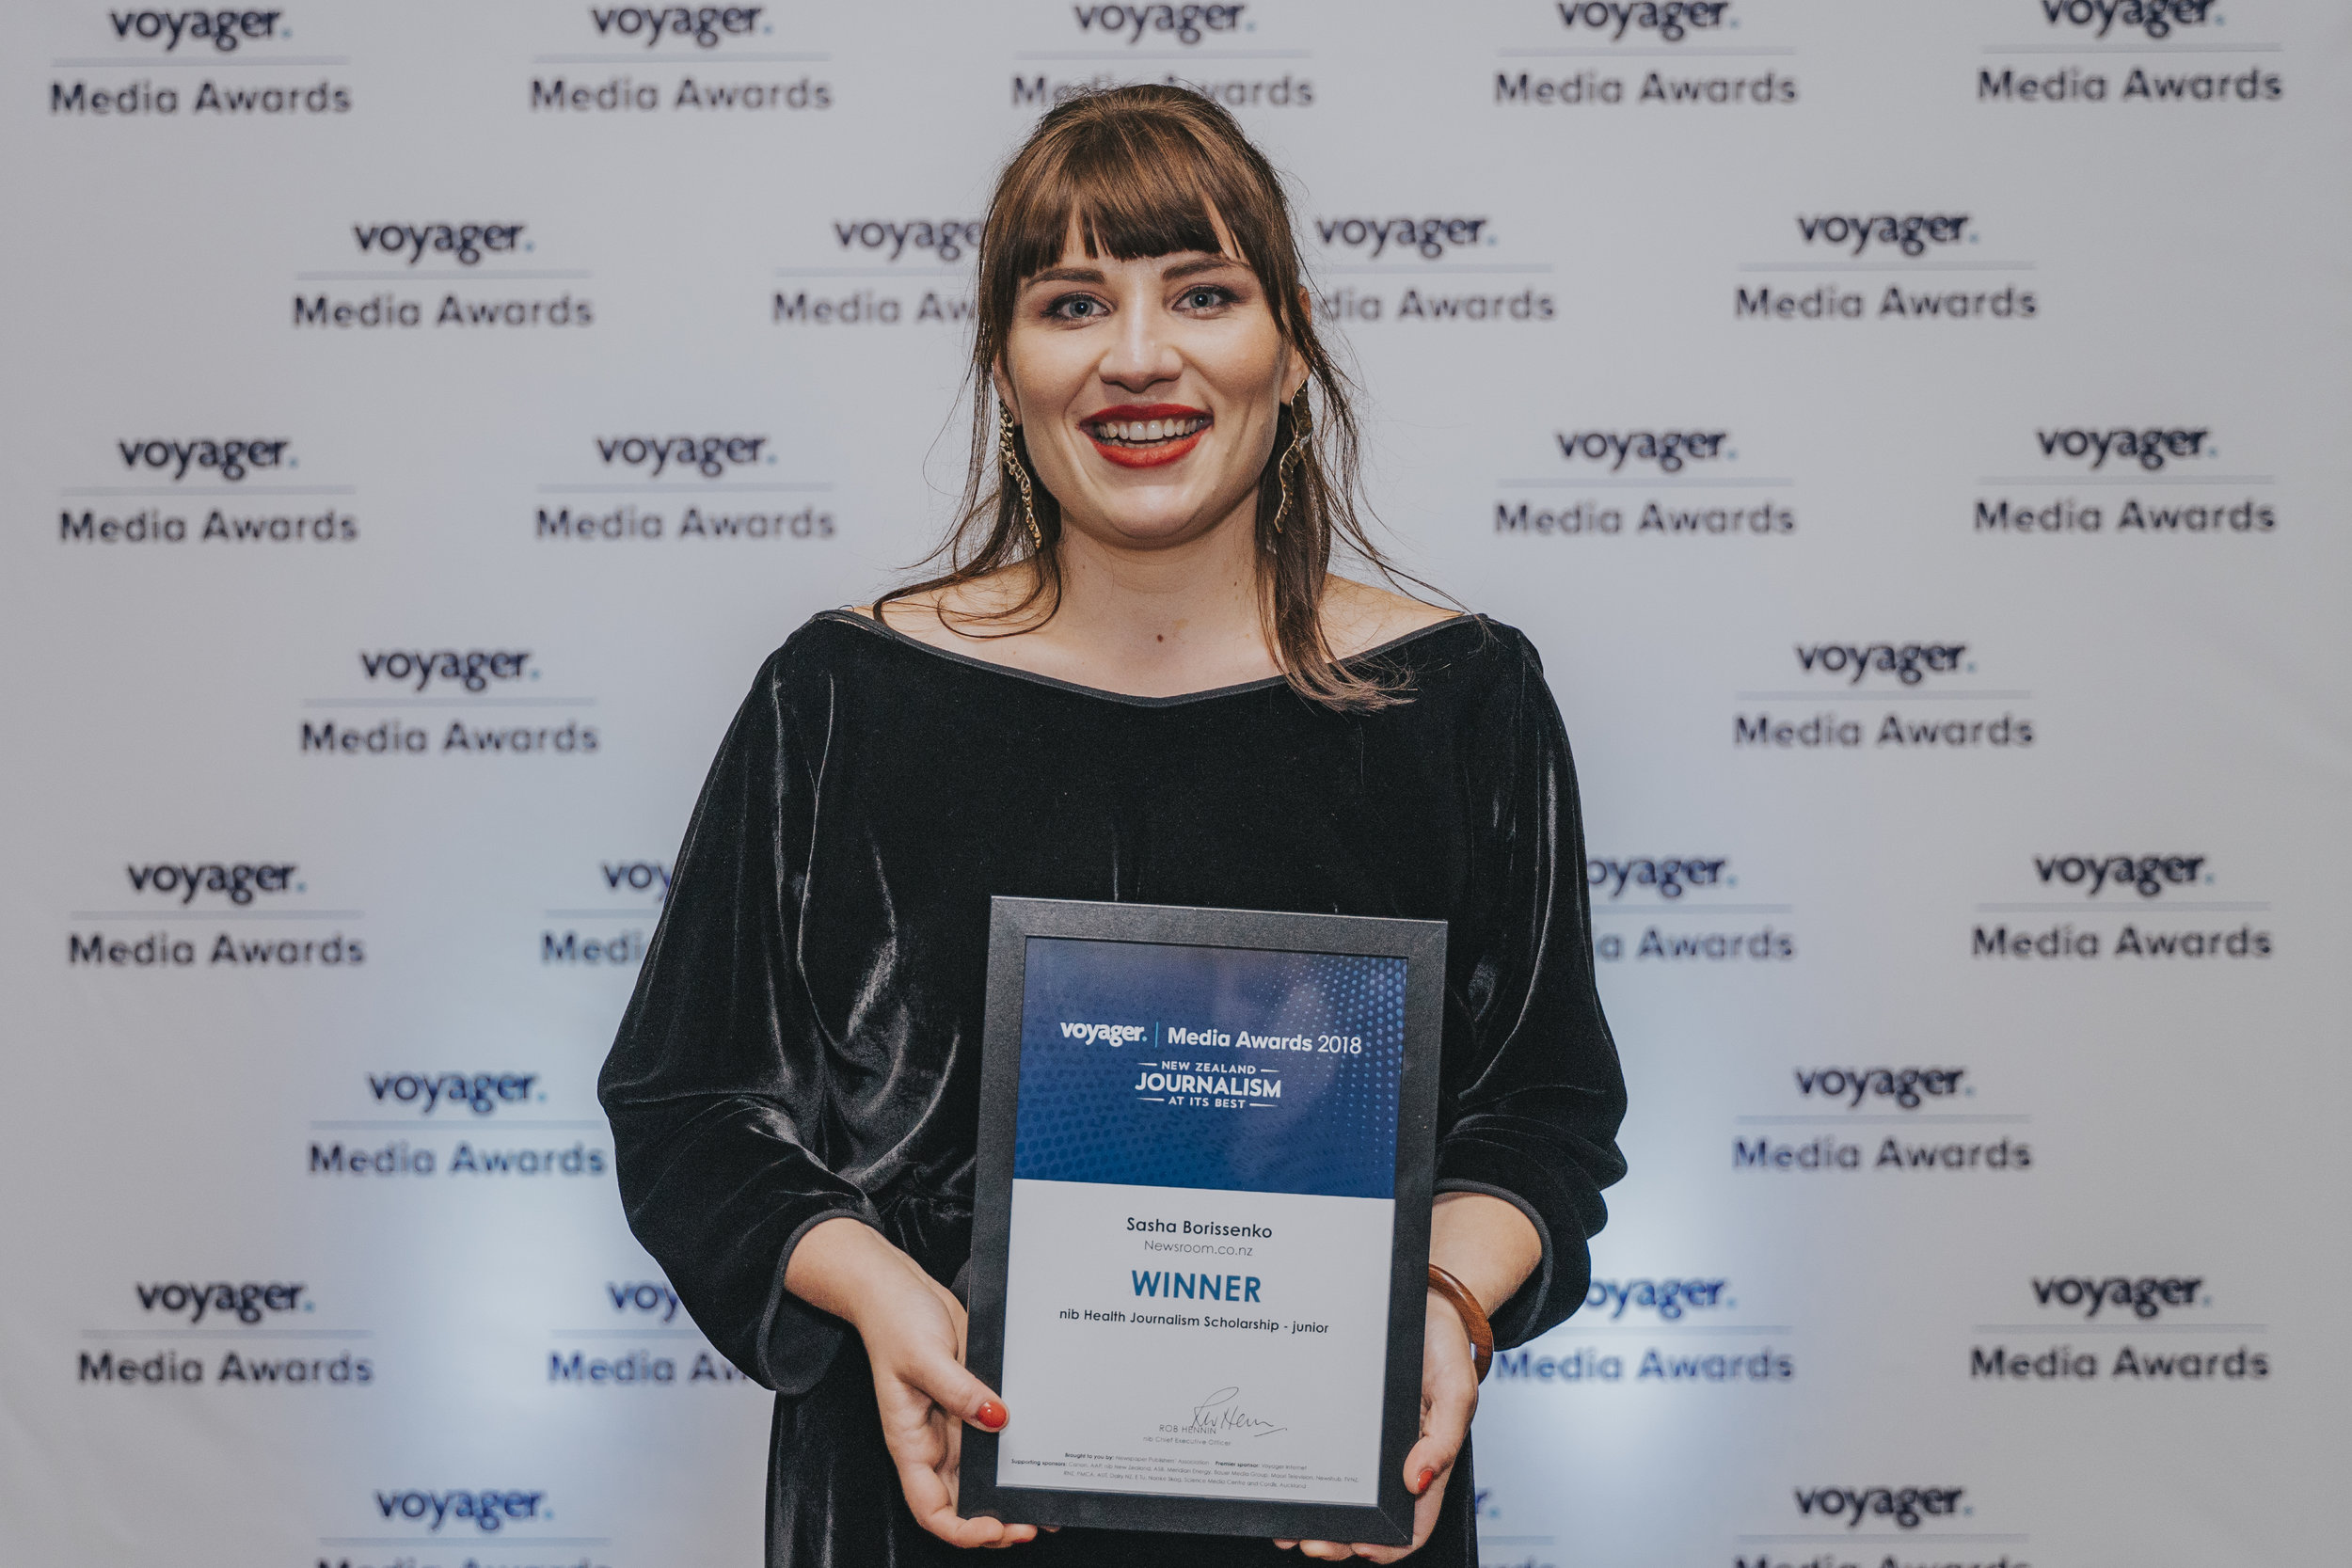 Voyager Media Awards 2018-214.JPG